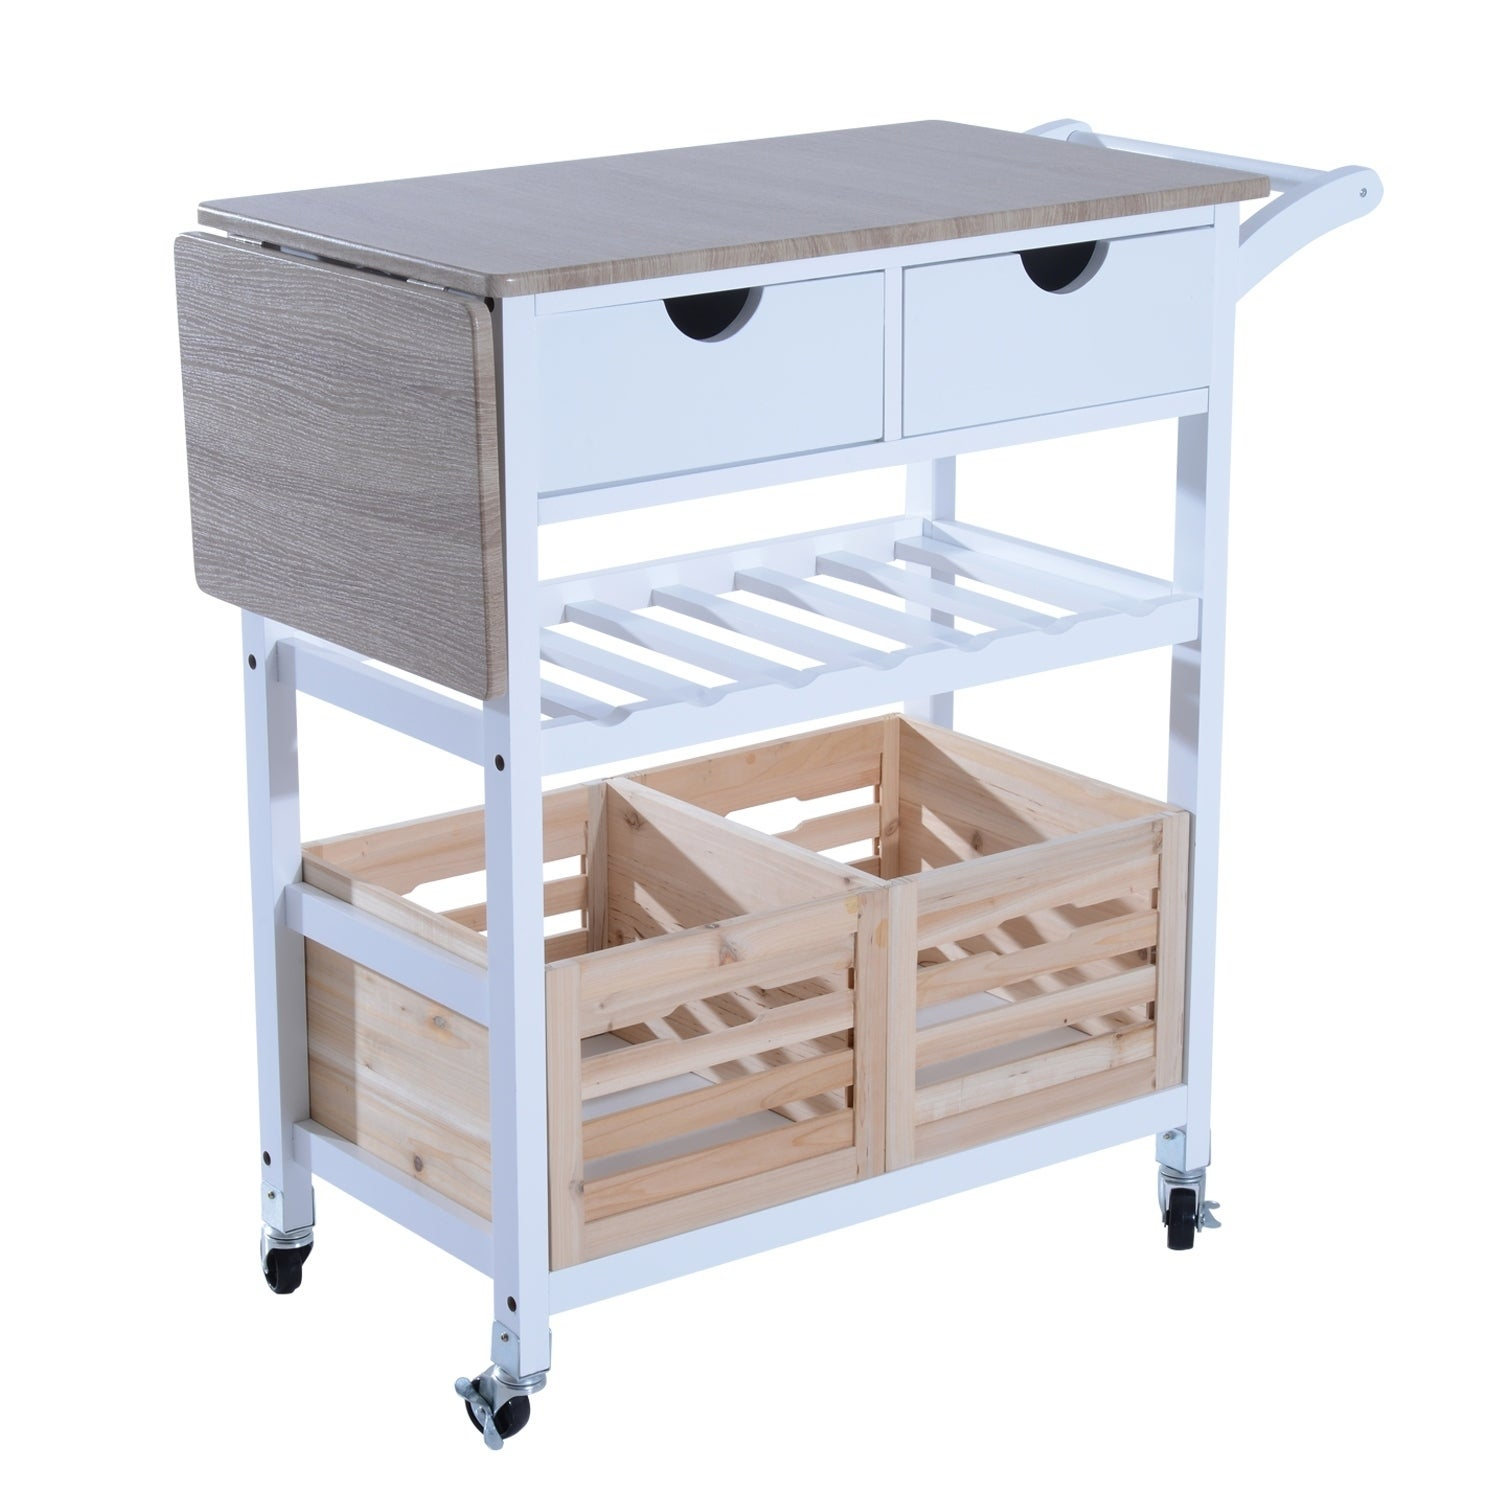 Shop homcom 34 rolling drop leaf kitchen trolley serving cart with wine rack n a on sale free shipping today overstock com 18088171